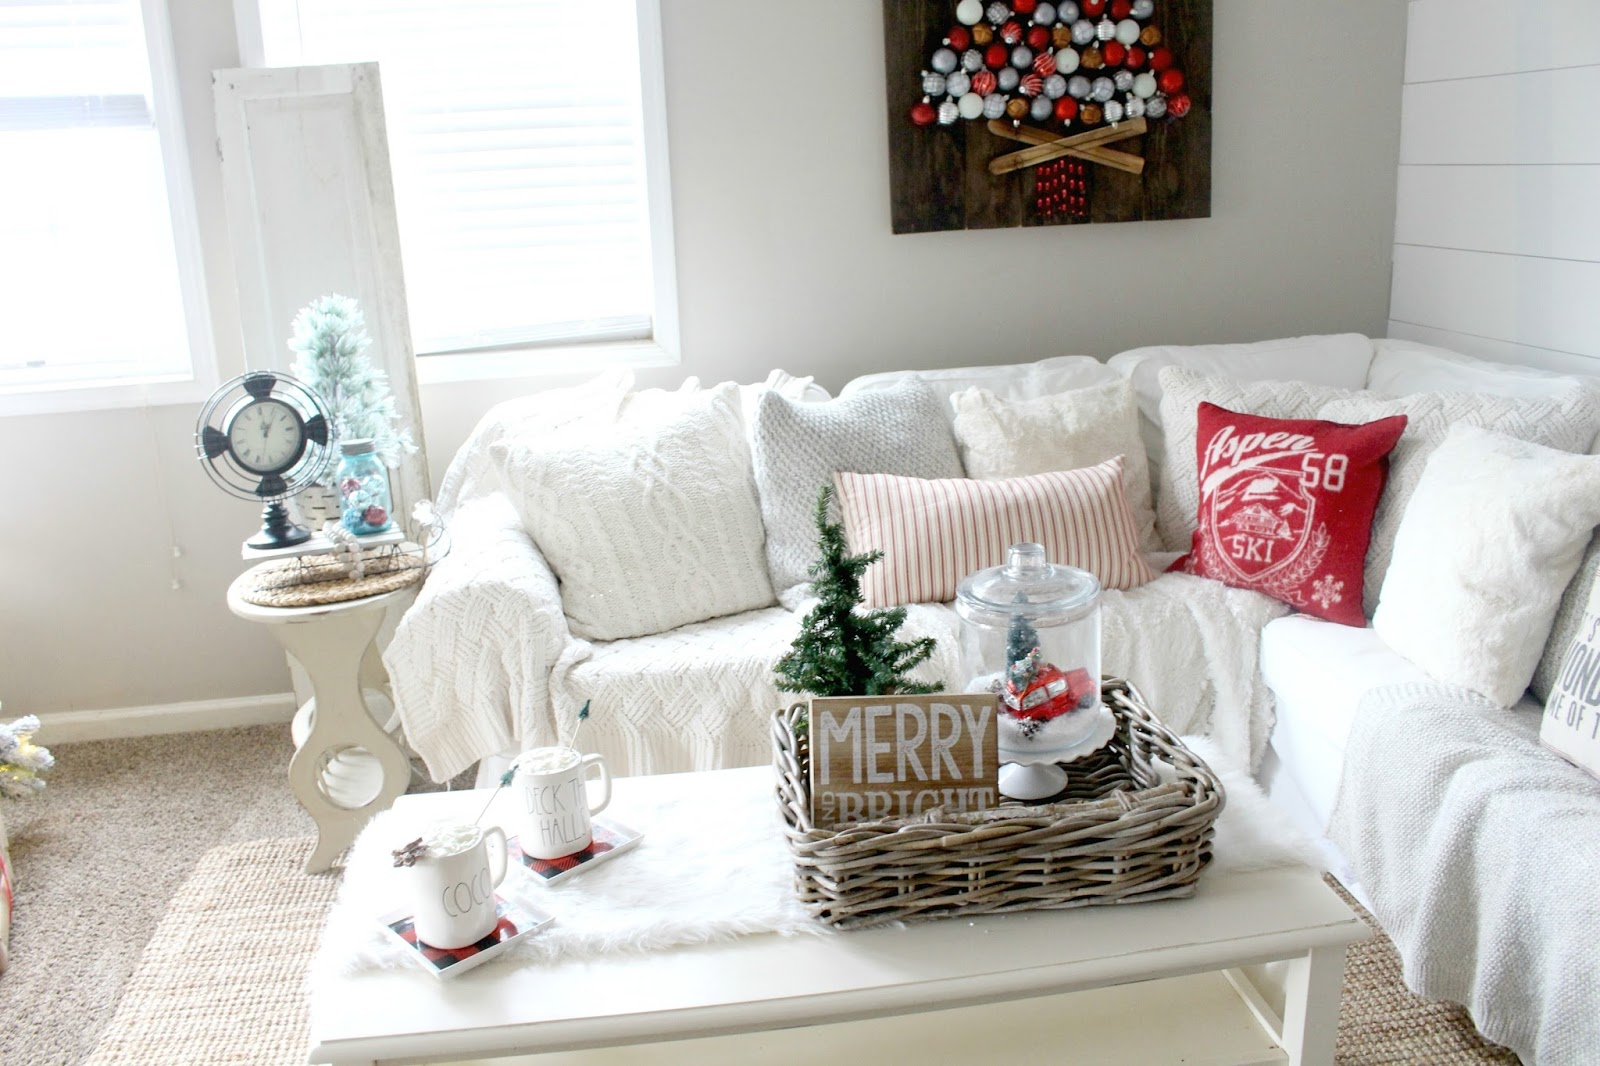 How To Decorate Your Coffee Table for Christmas - The Glam Farmhouse